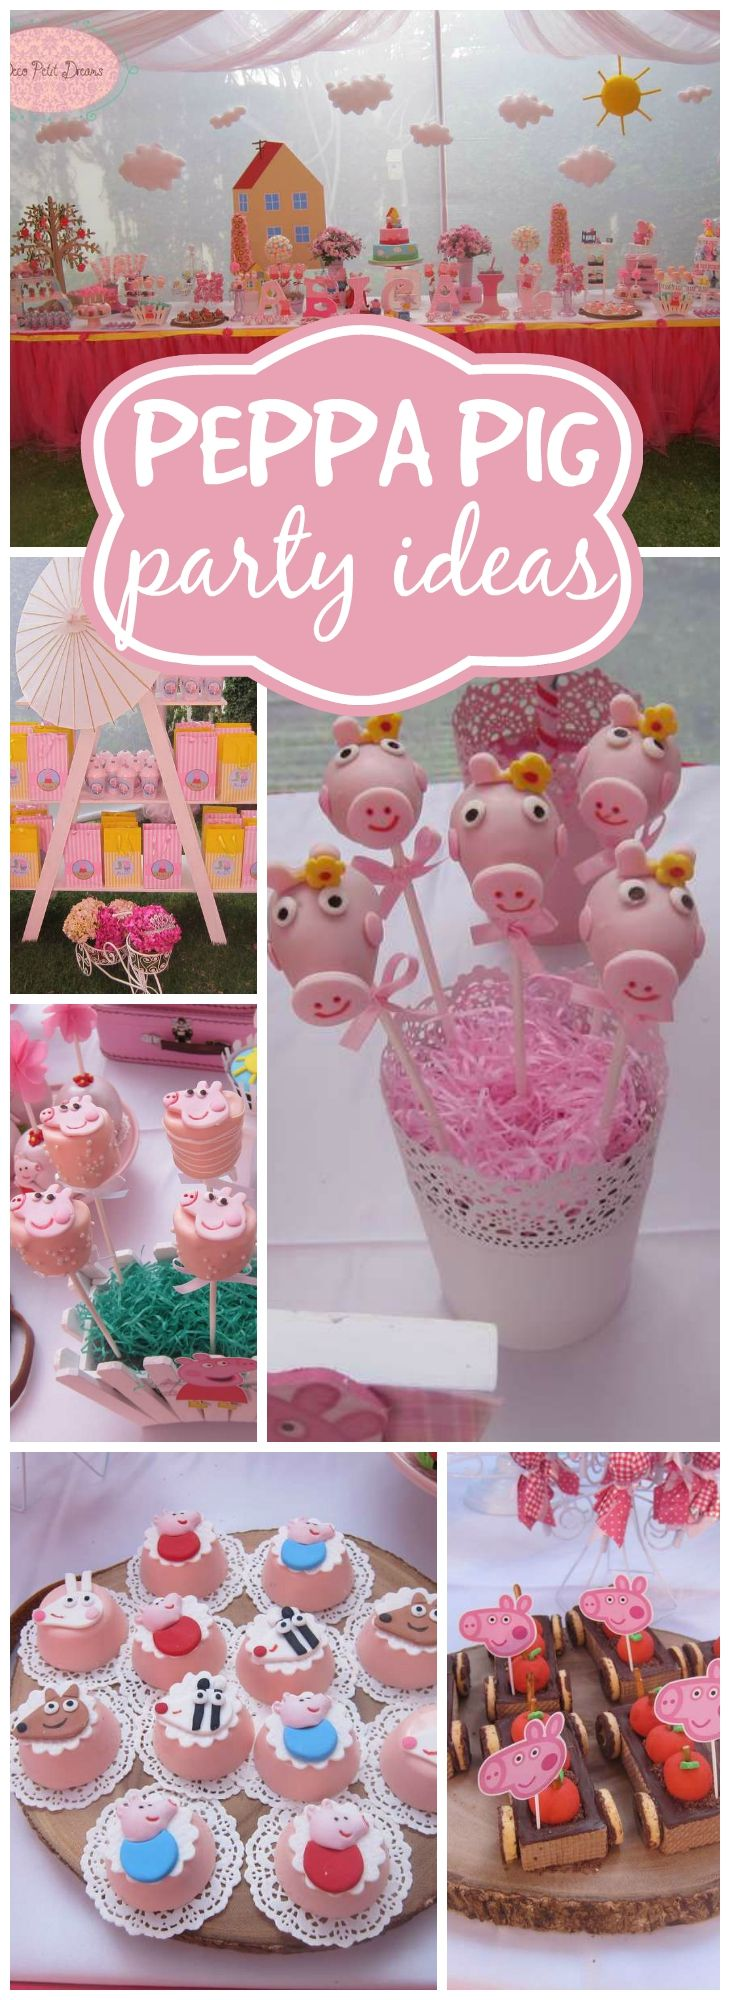 How Fun Is This Peppa Pig Girl Birthday Party See More Ideas At CatchMyParty